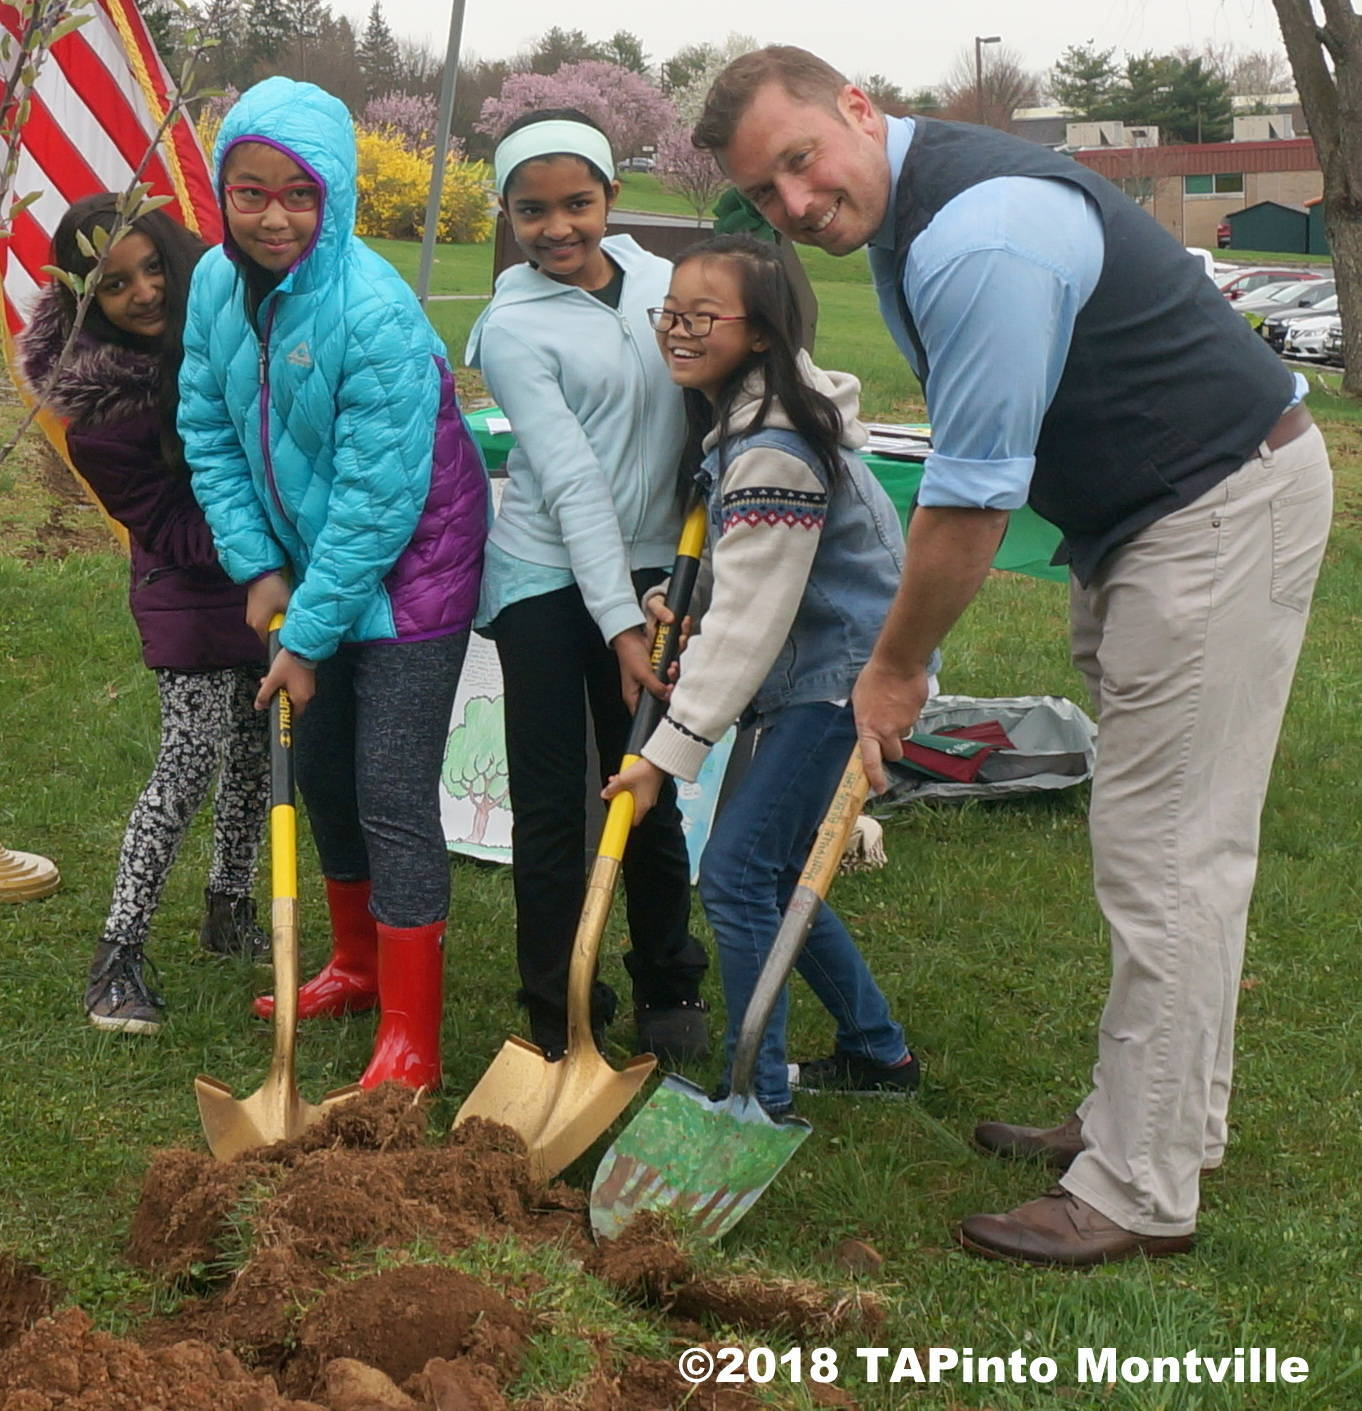 fc17a93334b8f190e4f6_a_The_poster_contest_winners_and_honoree_Paul_Rolfe_get_ready_to_plant_the_apple_tree__2018_TAPinto_Montville____1..JPG